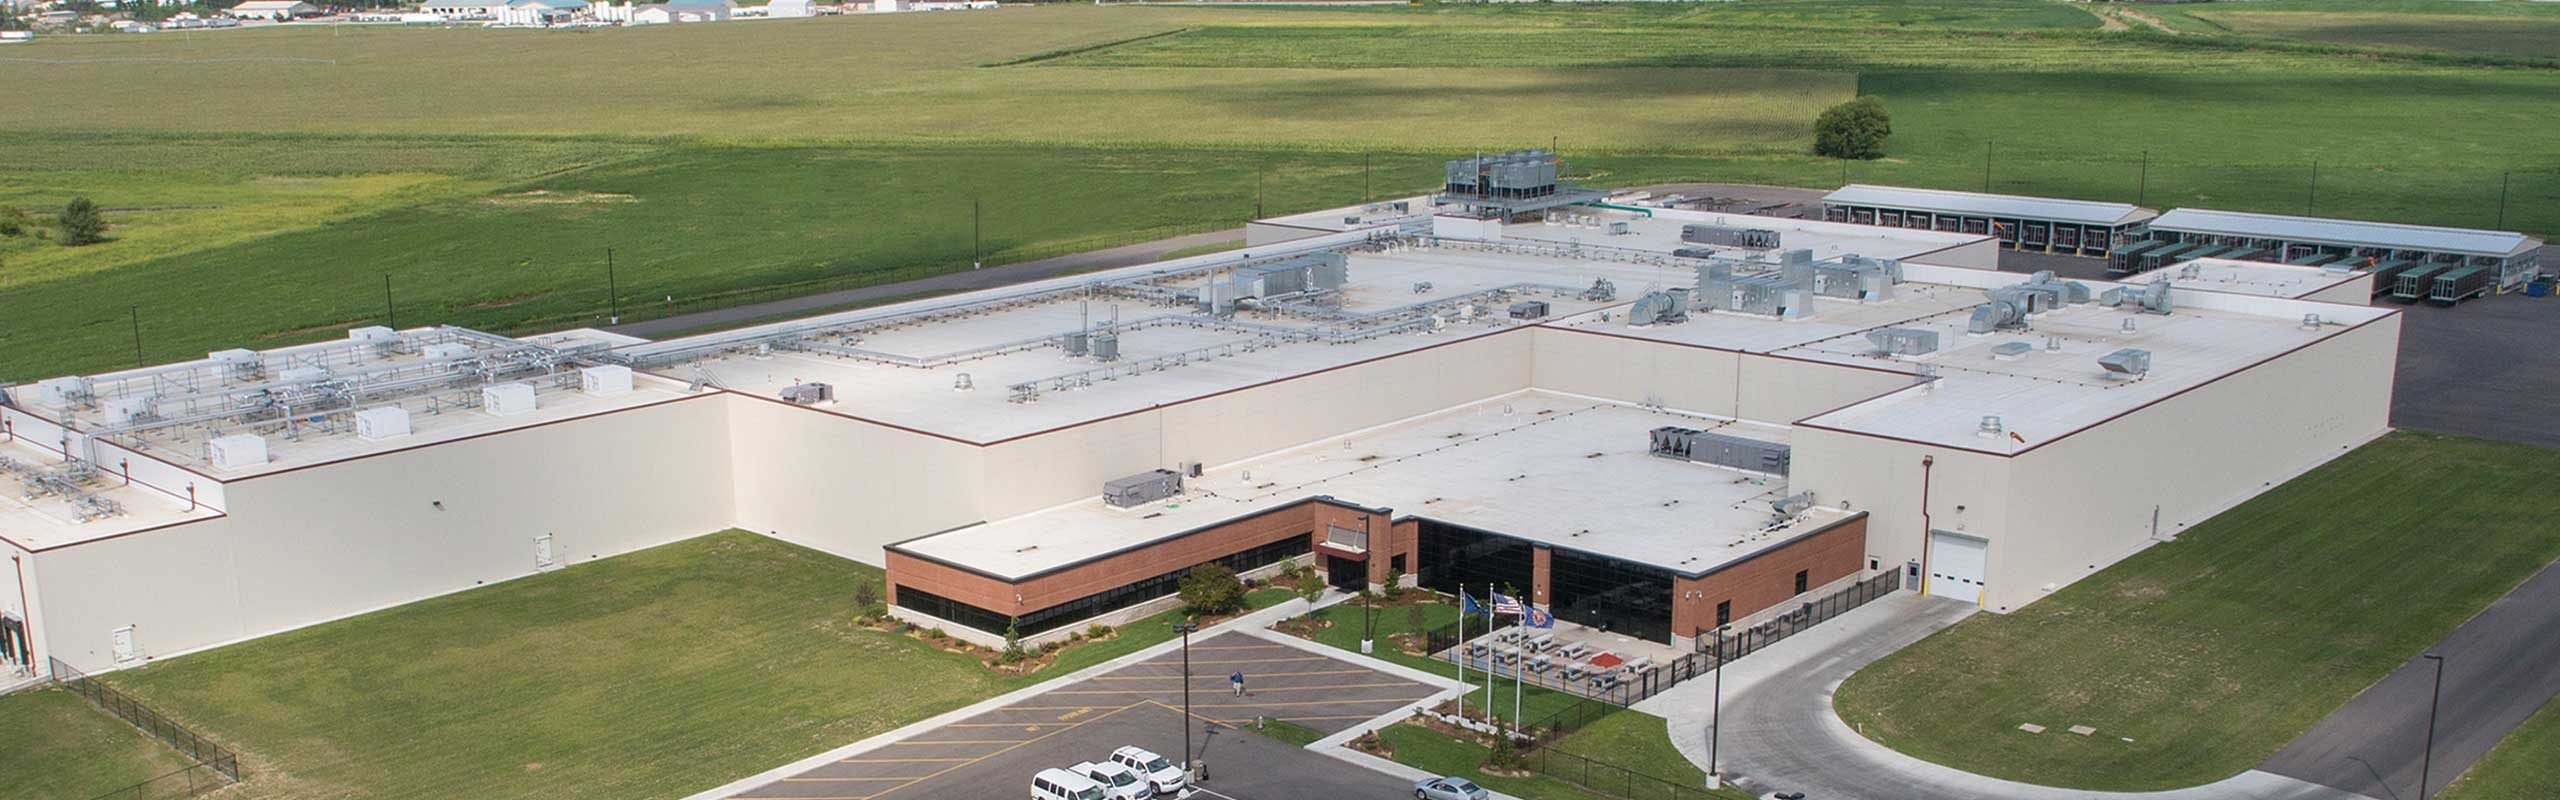 Farbest Foods, Inc. Vincennes, Indiana Processing Plant